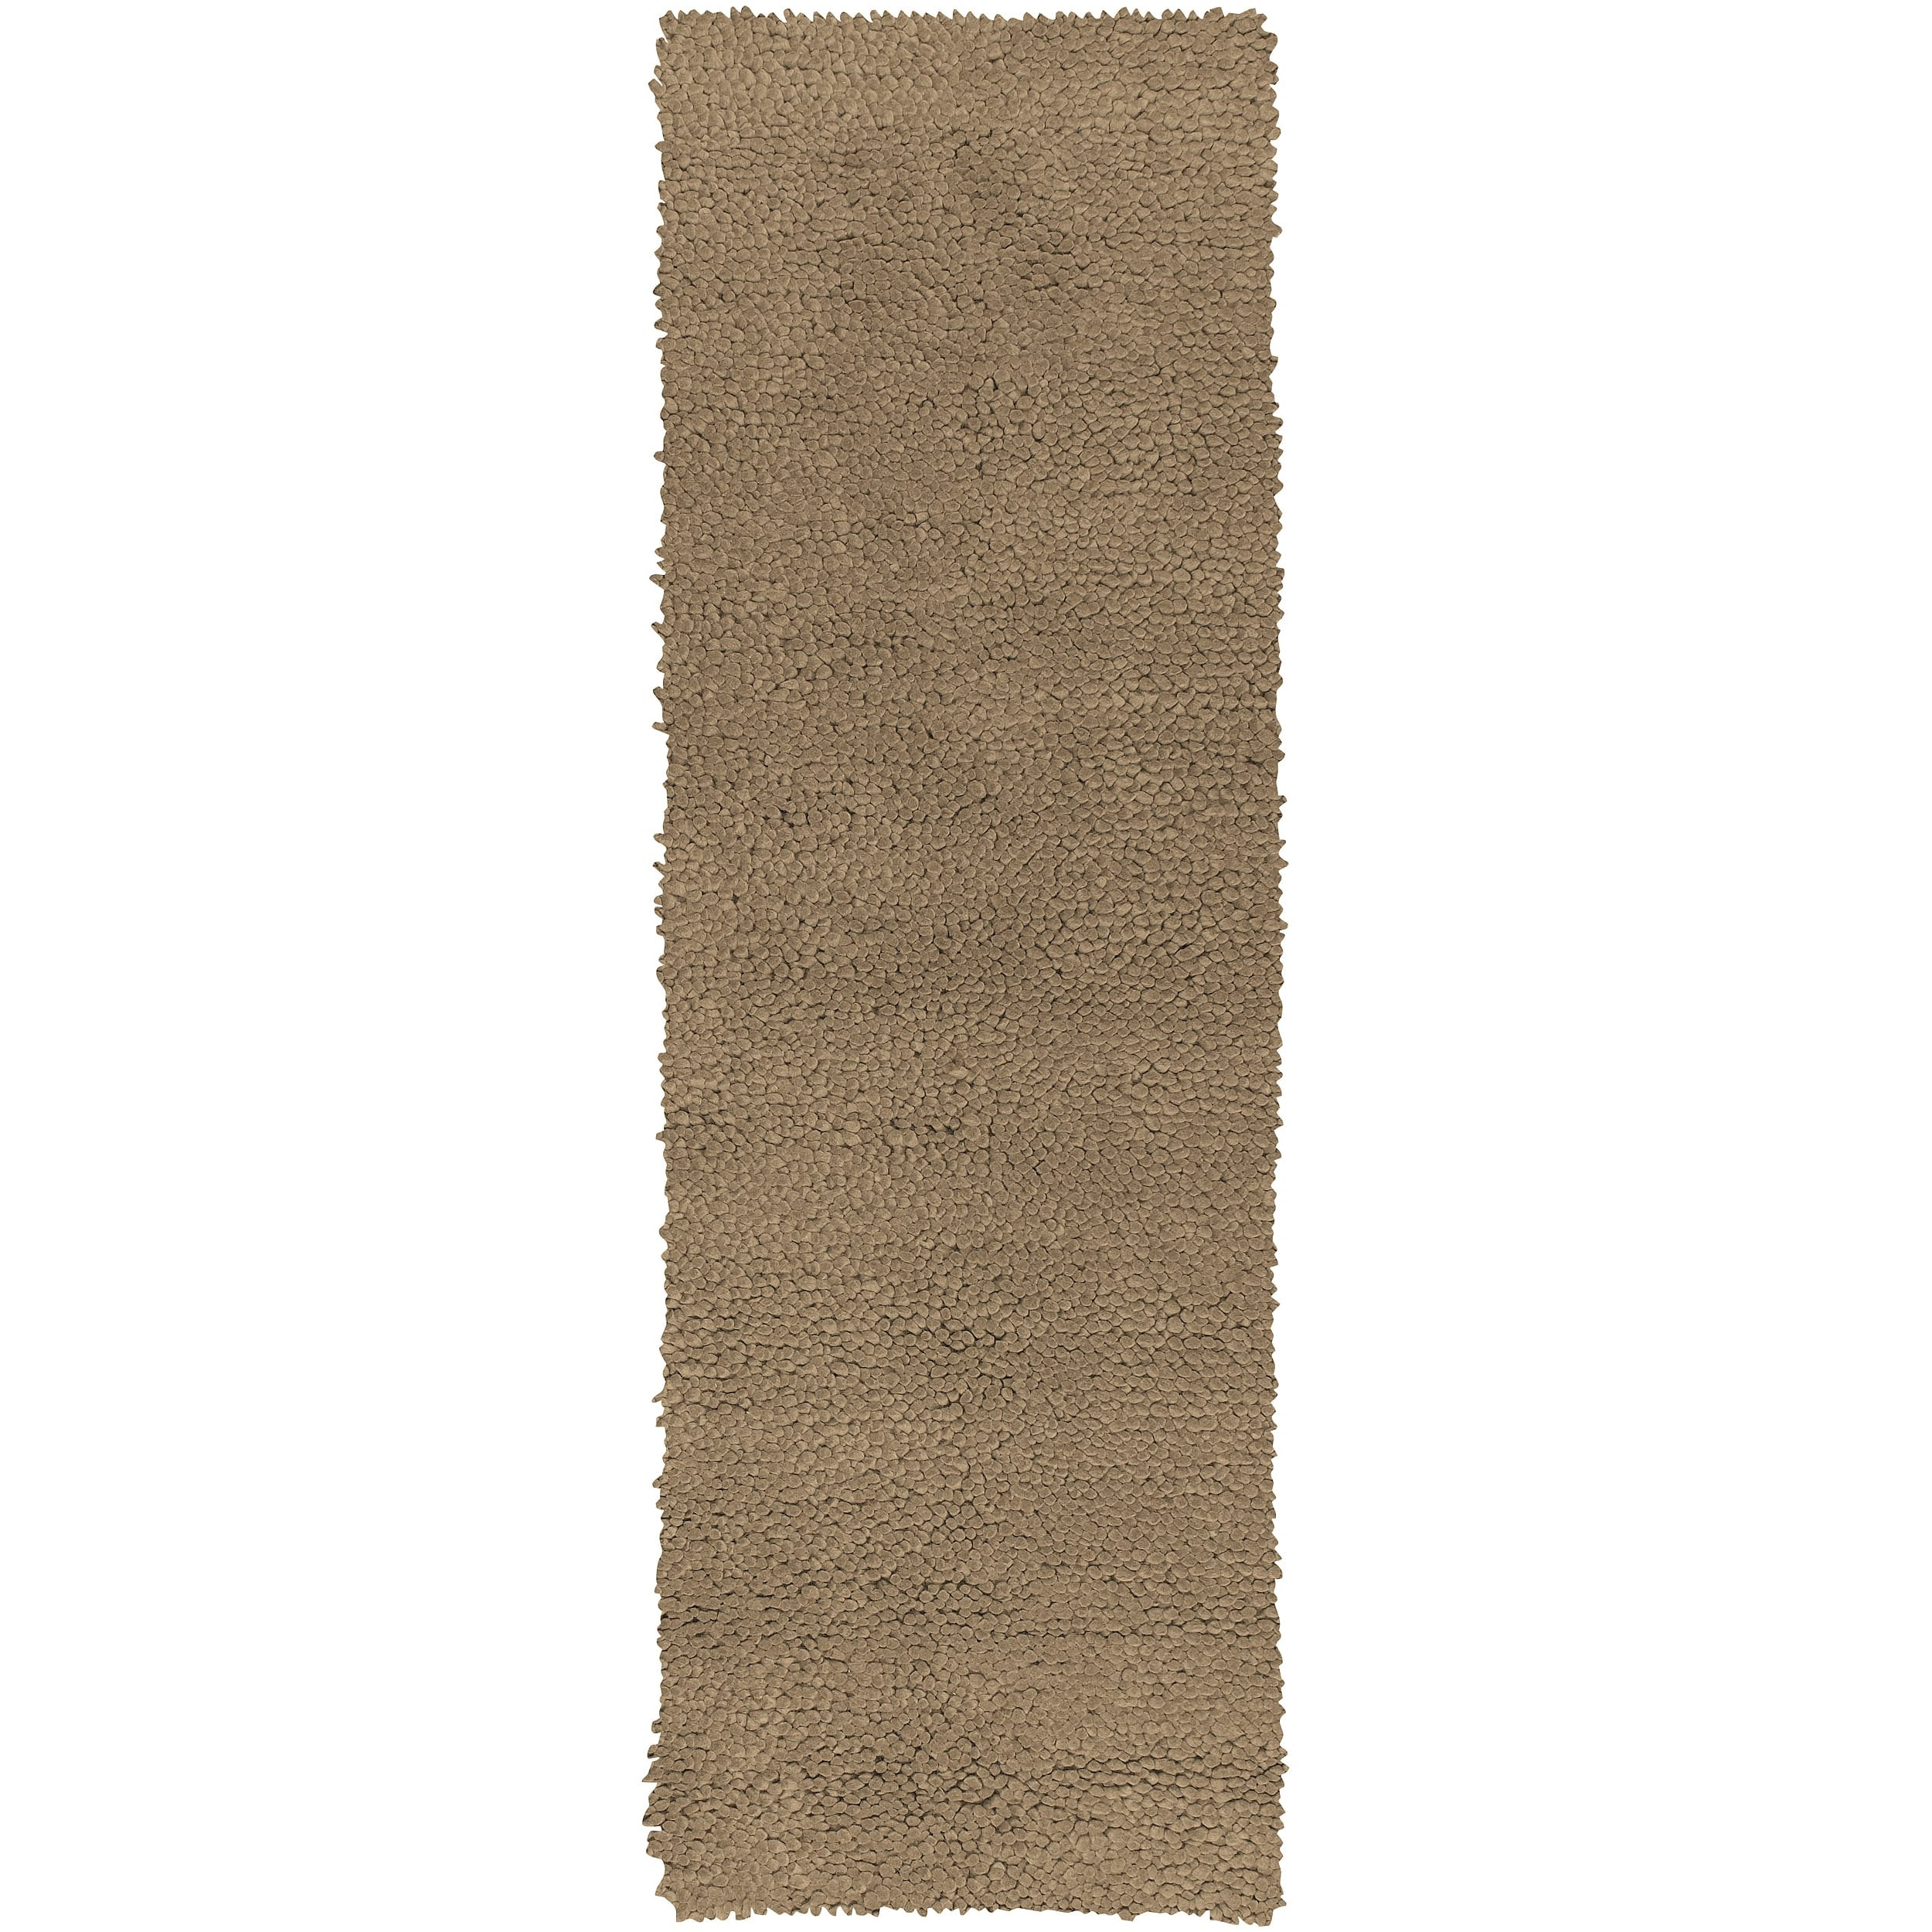 4 X 10 Rugs Area Rugs Shop The Best Deals For Sep 2017 Within Hallway Runners 12 Feet (View 16 of 20)